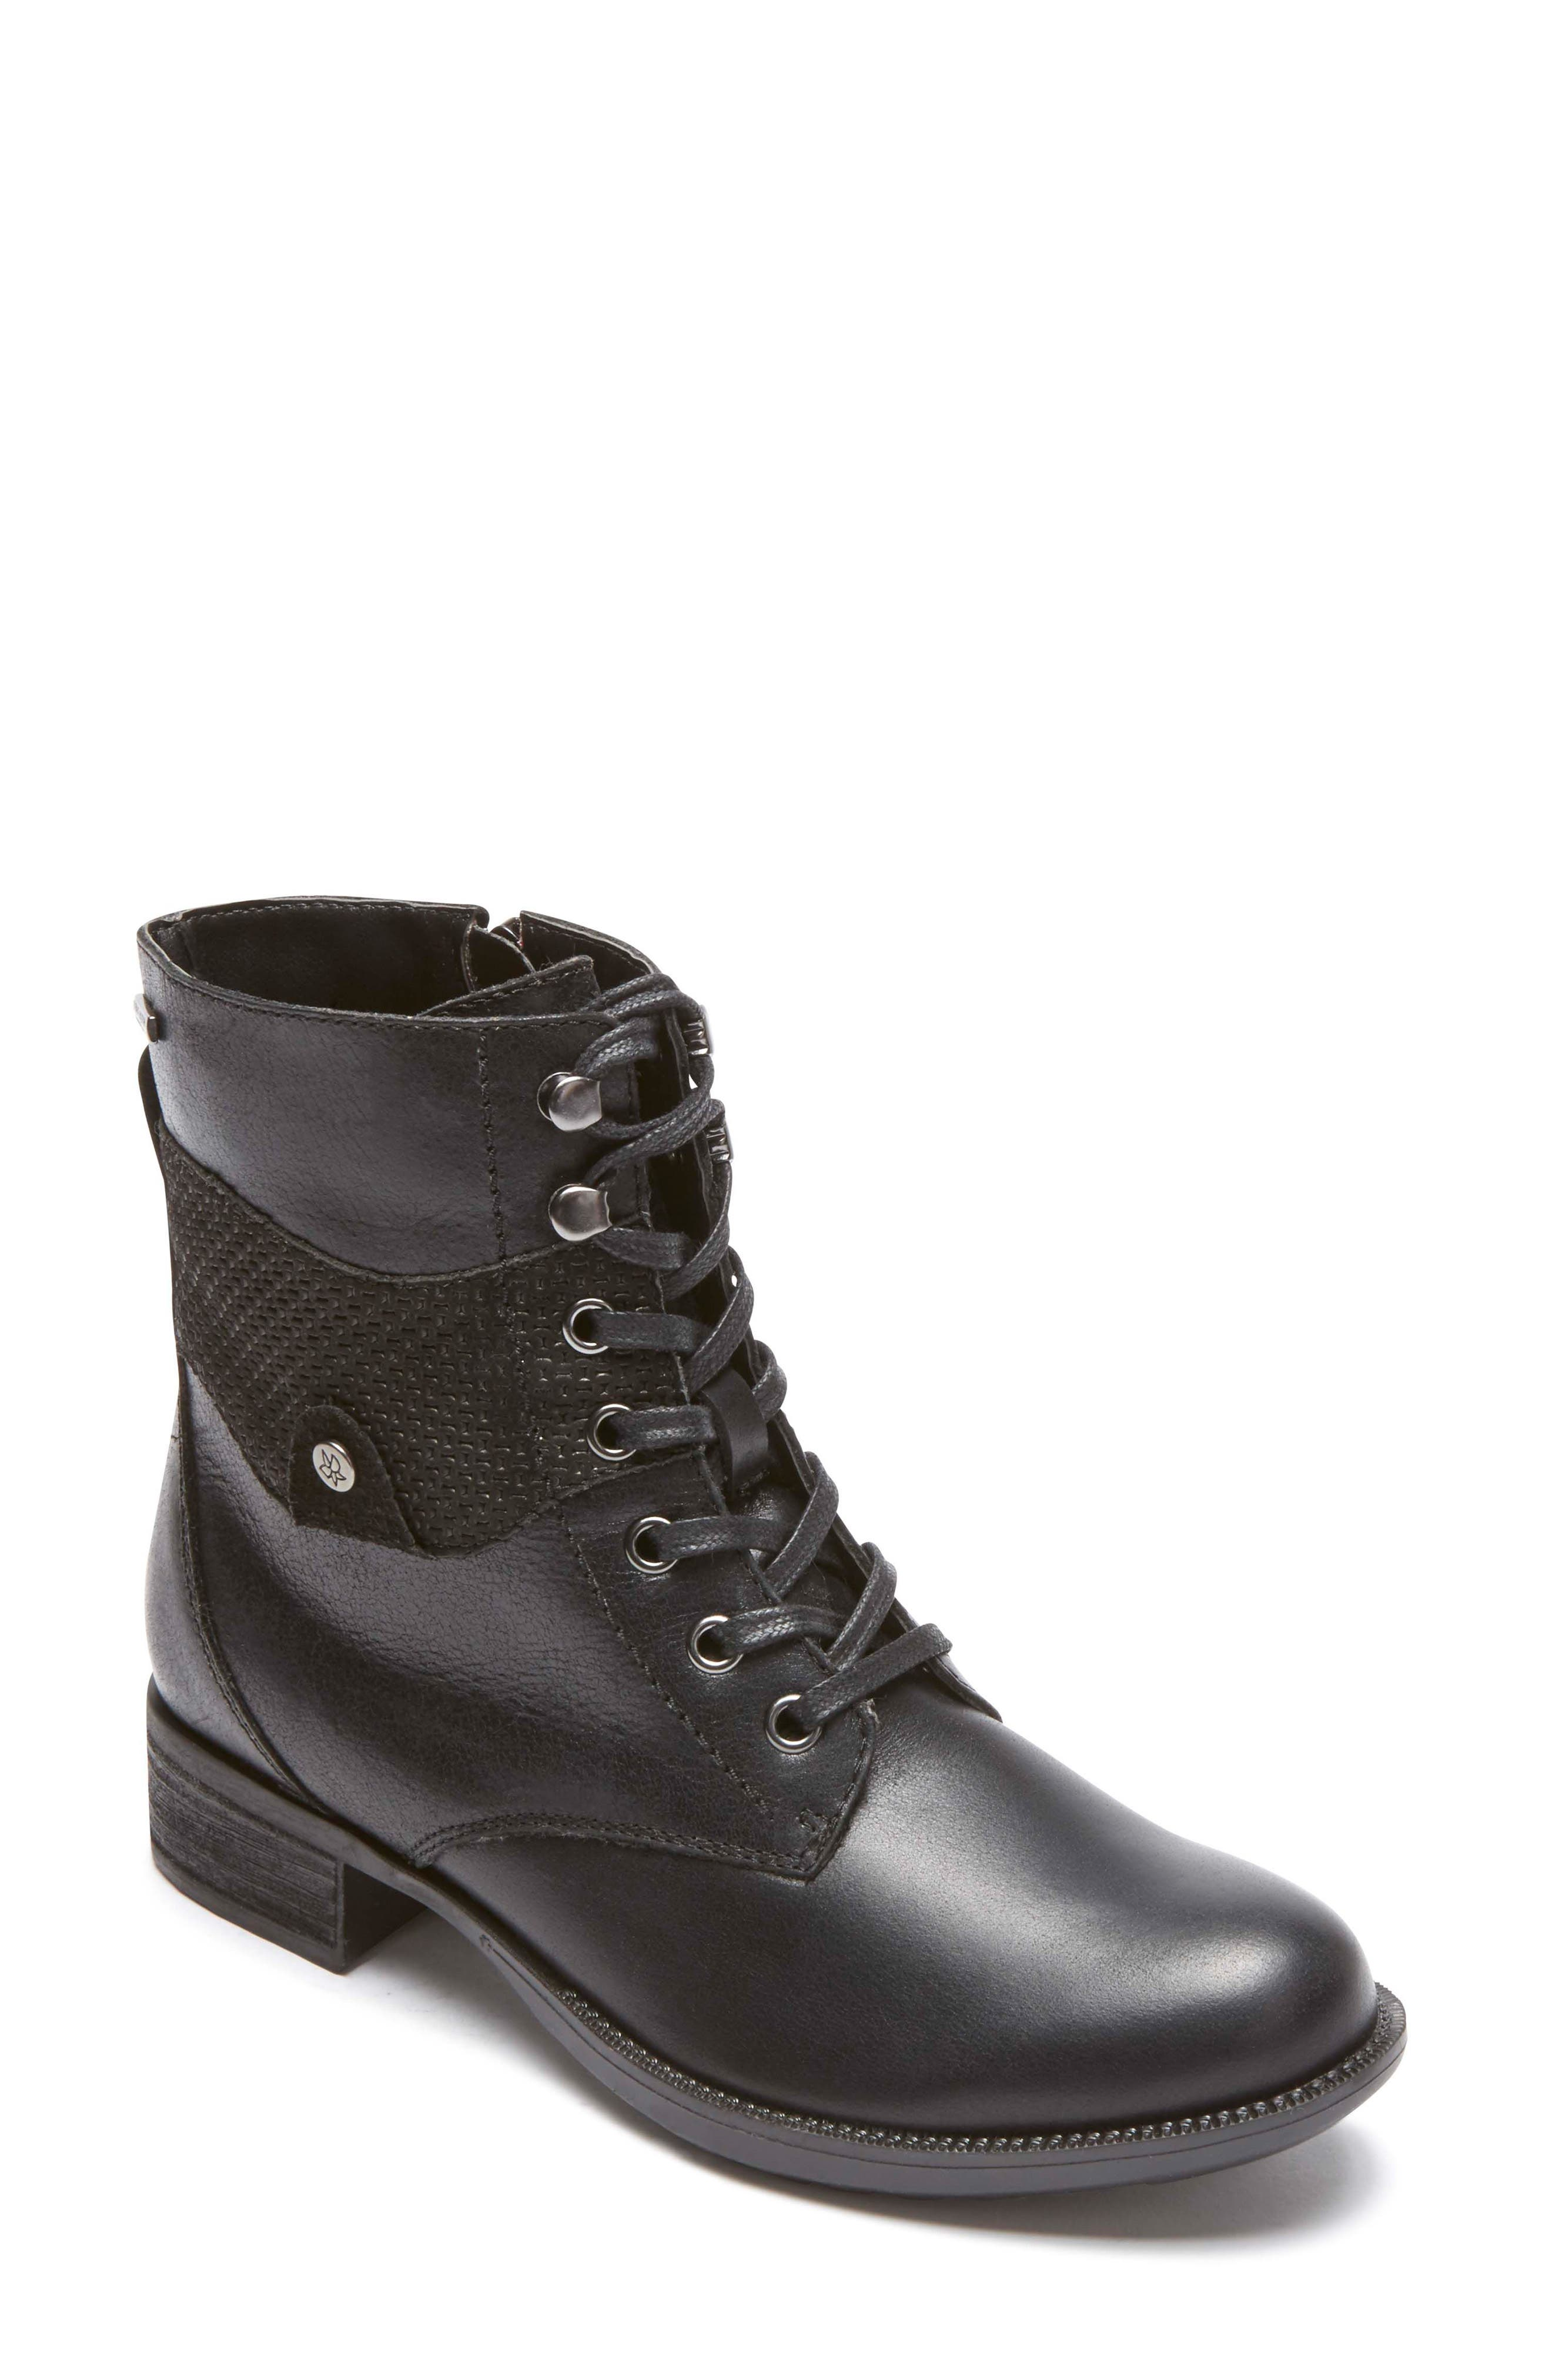 Rockport Copley Waterproof Combat Boot, Black